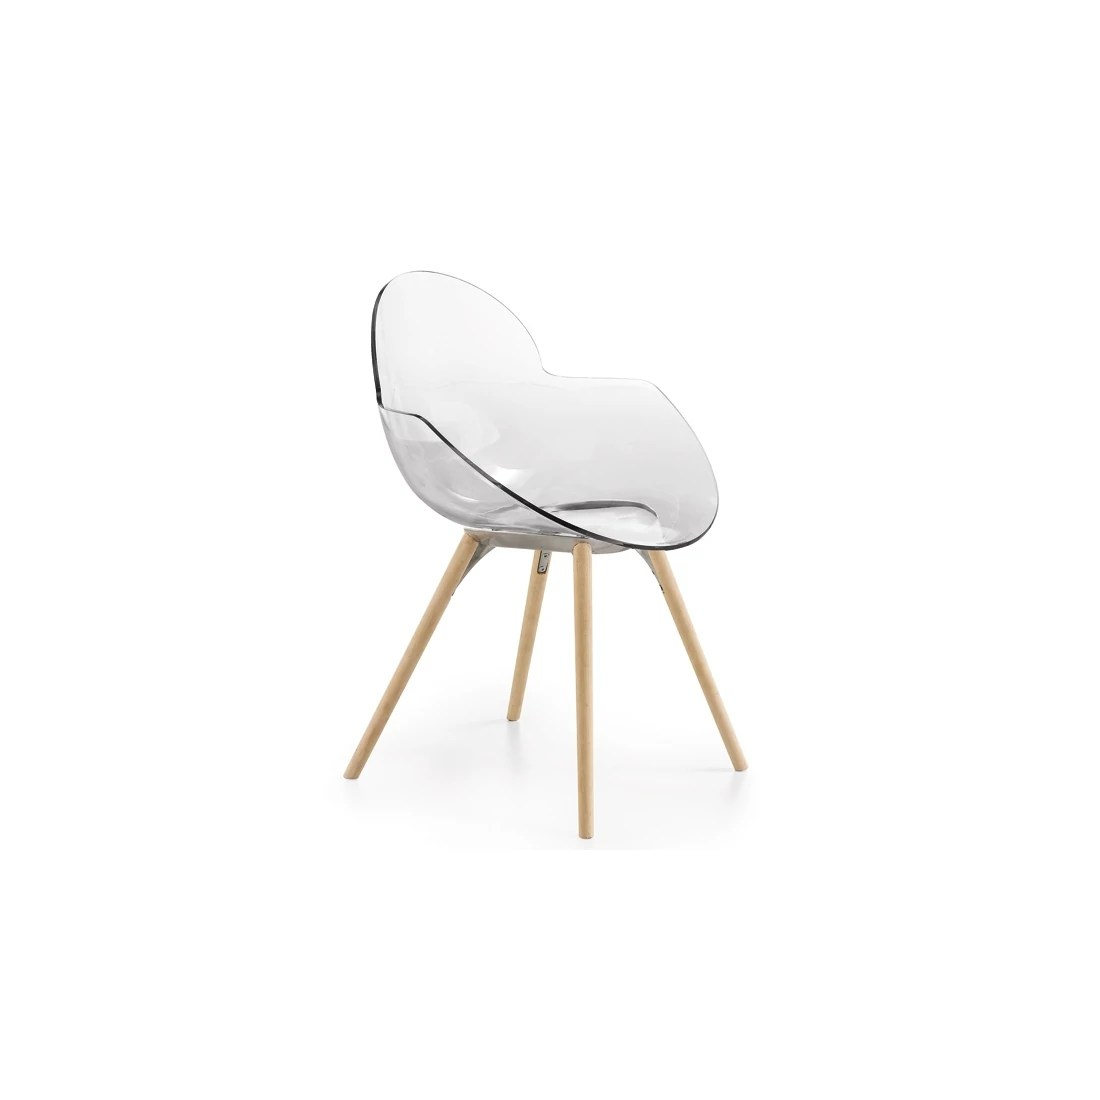 Design Chaises Chaise Design Infiniti, Cookie Wooden Legs, Chaises Design